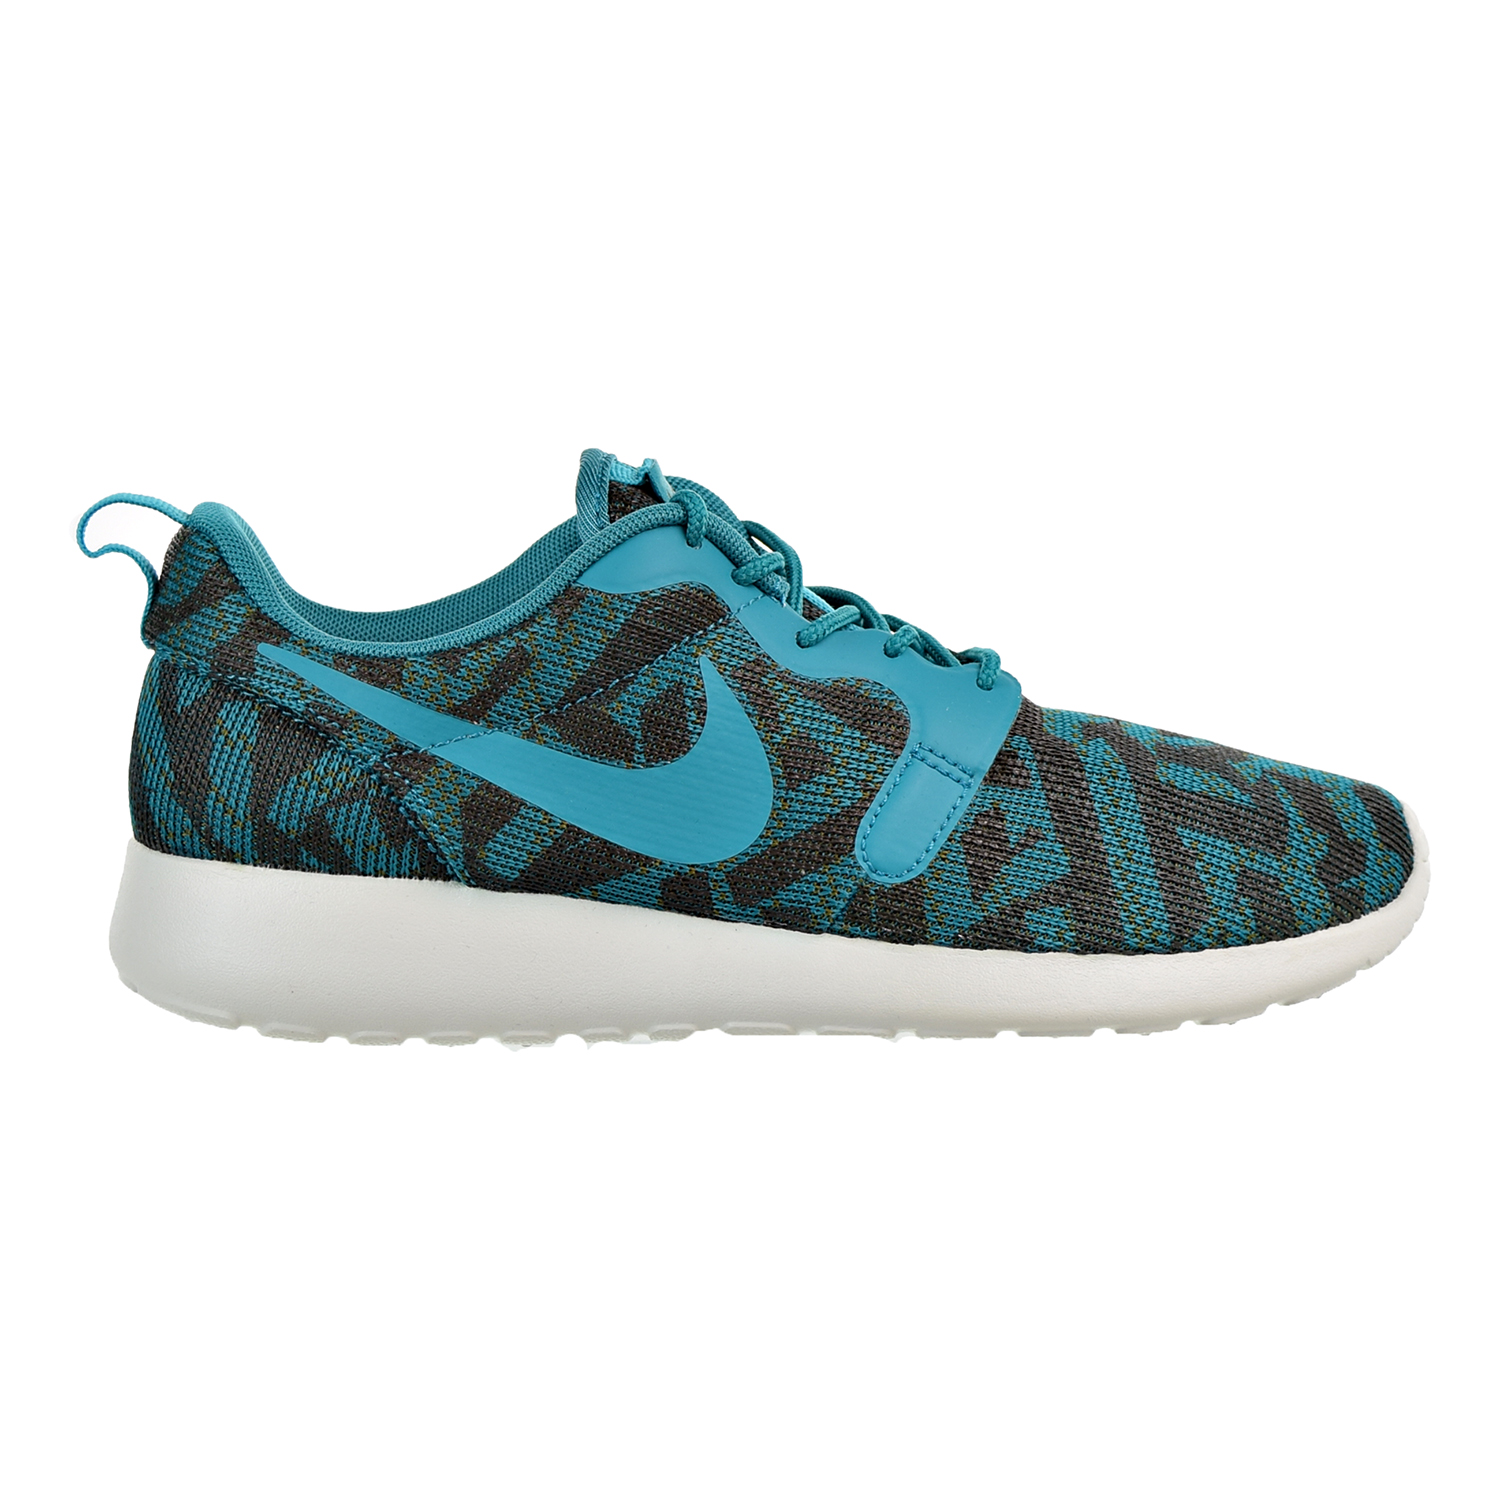 mosquito el centro comercial Perpetuo  Nike Roshe One KJCRD Women's Shoes Military Green-Emerald 705217-301   eBay